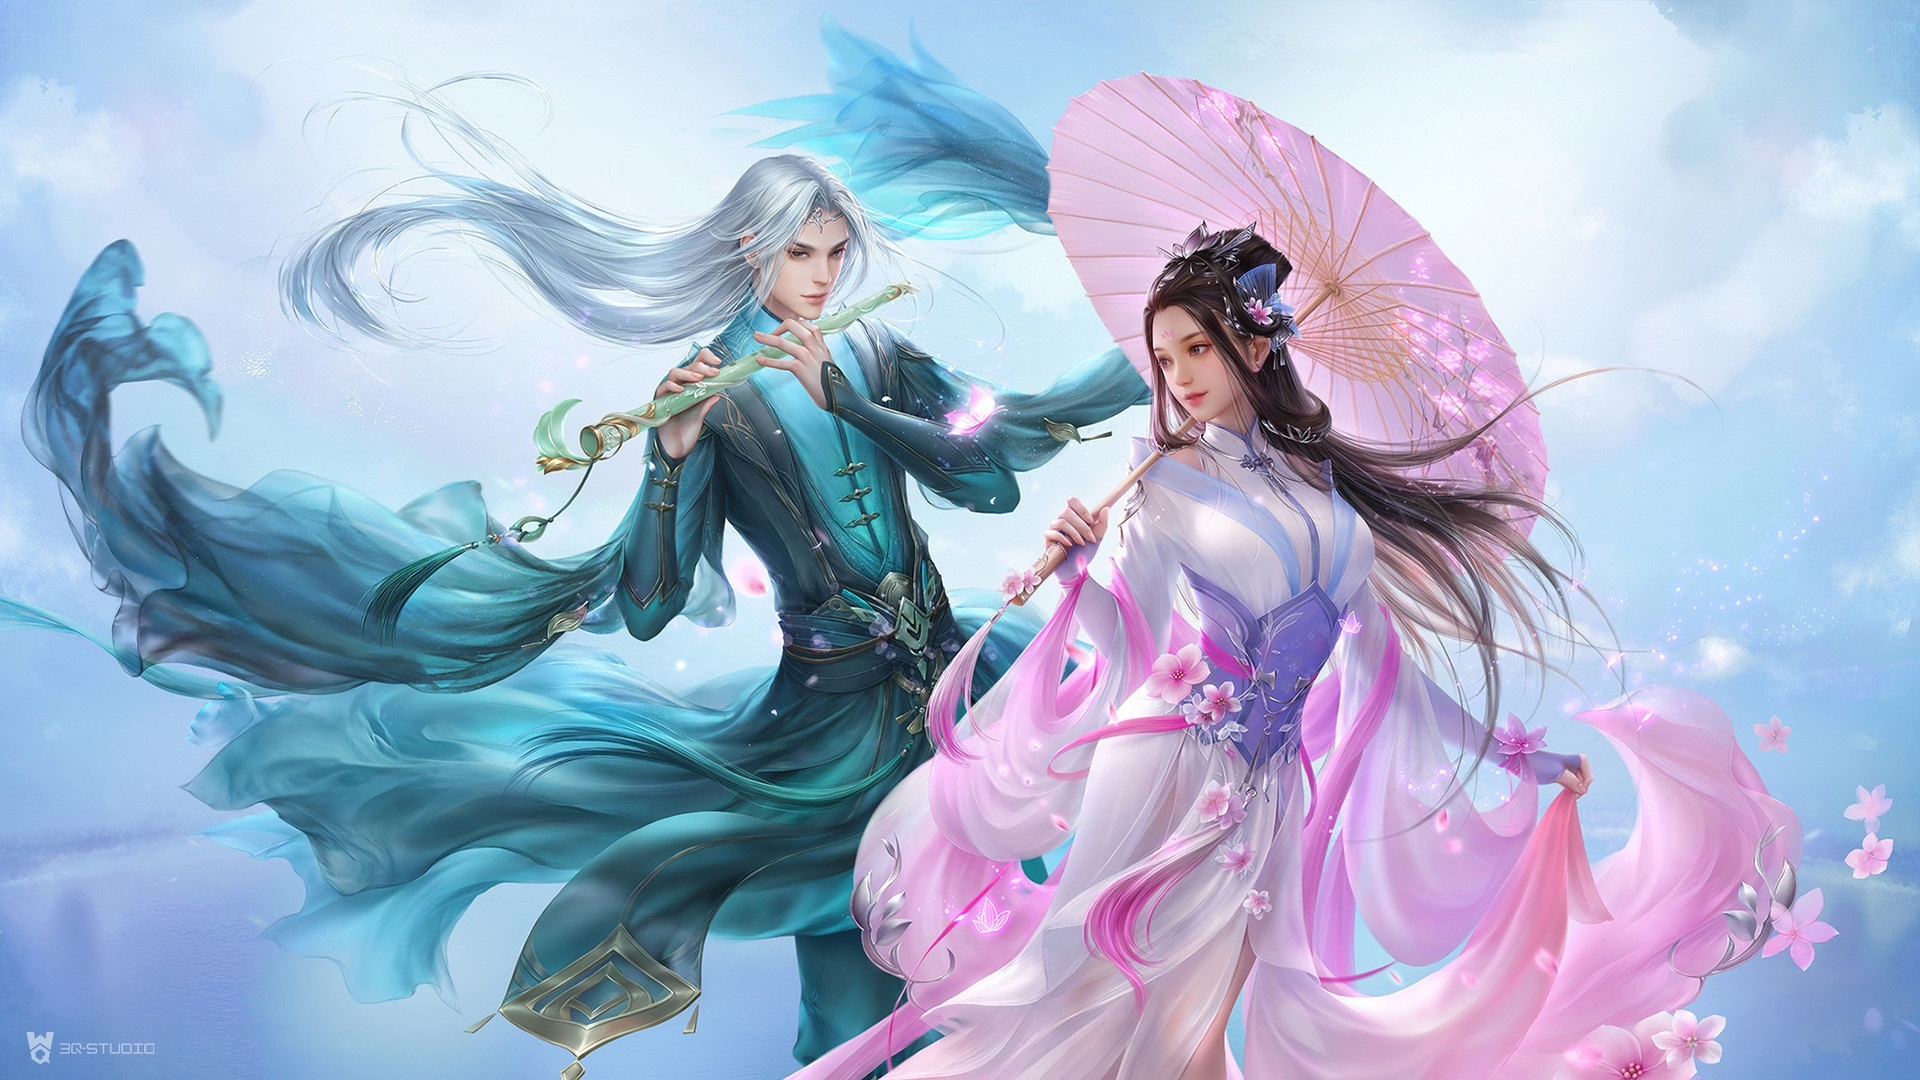 Wallpaper Beautiful Girl And Boy Lovers Chinese Retro Style 1920x1080 Full Hd 2k Picture Image